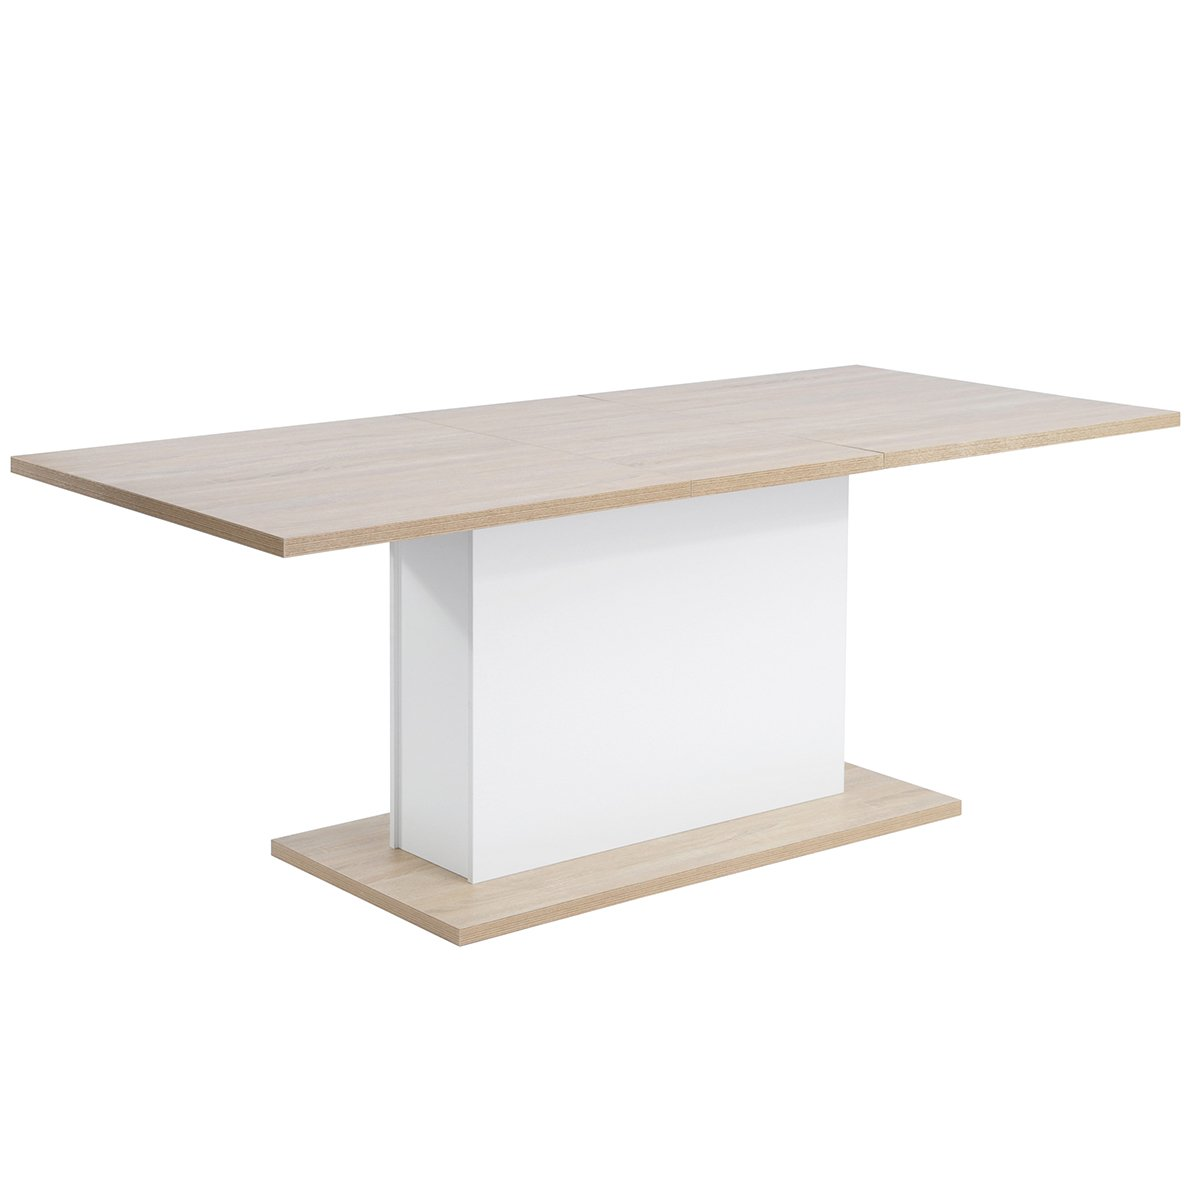 Amazon.com: Homy Casa Mesa de comedor rectangular extensible ...